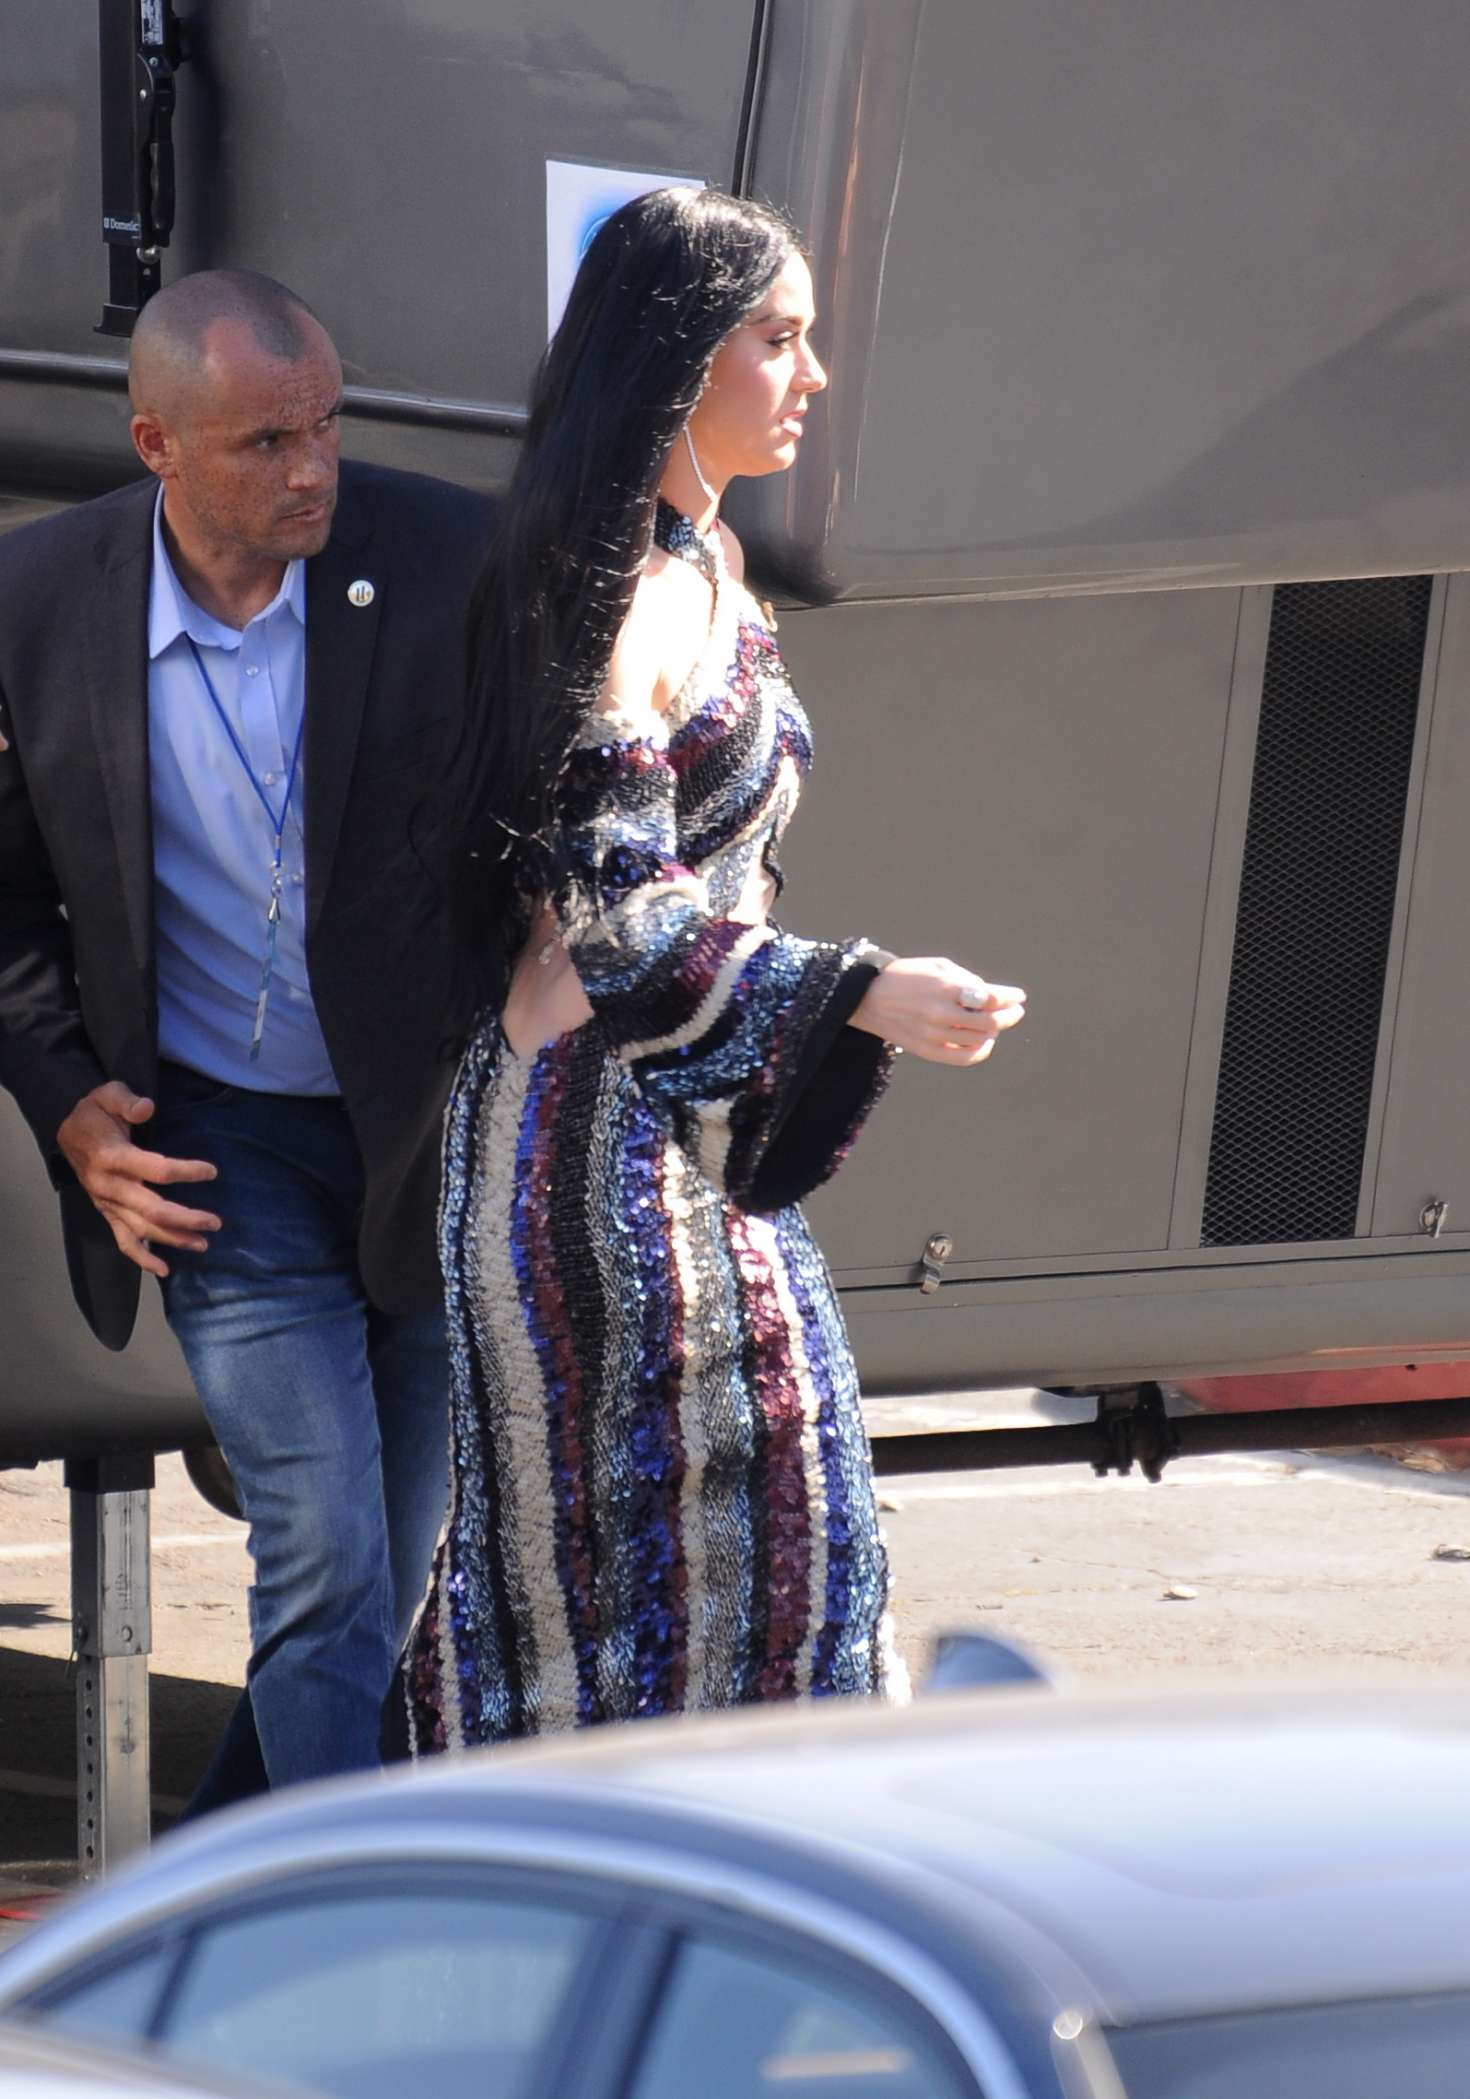 Katy Perry - Arriving at 'American Idol Live' in Los Angeles